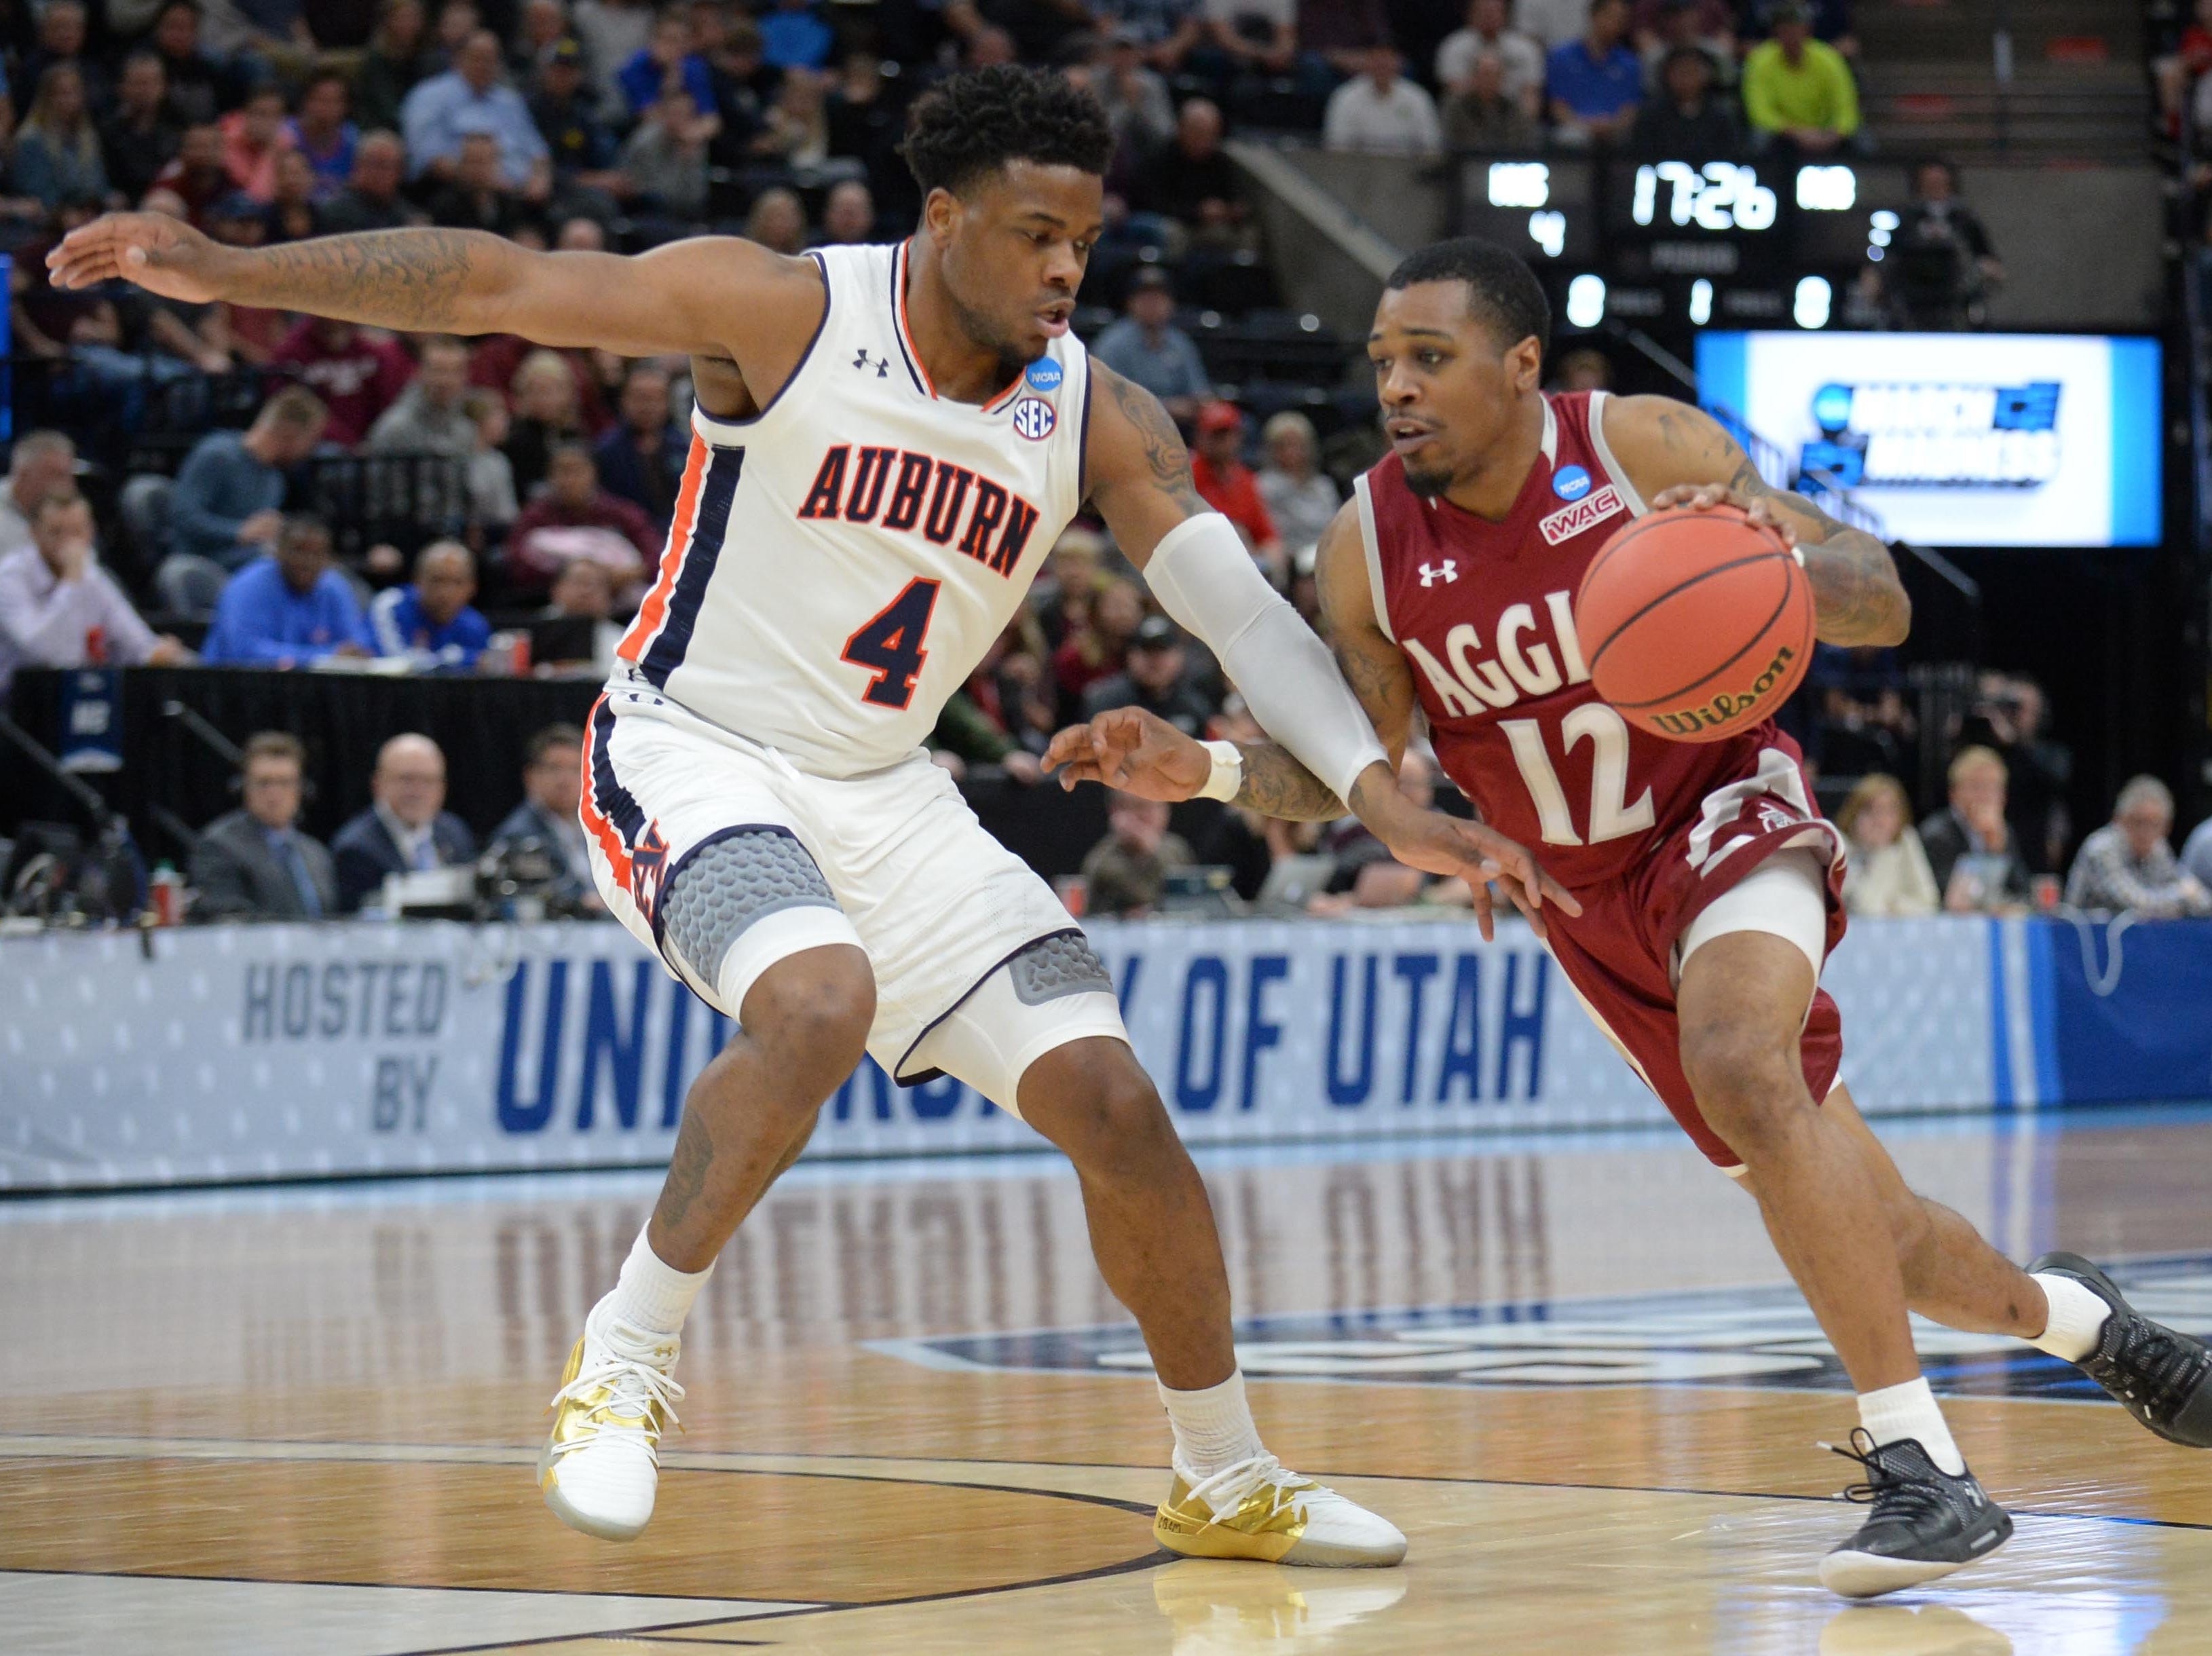 Mar 21, 2019; Salt Lake City, UT, USA; Auburn Tigers guard Malik Dunbar (4) defends New Mexico State Aggies guard AJ Harris (12) during the first half in the first round of the 2019 NCAA Tournament at Vivint Smart Home Arena. Mandatory Credit: Gary A. Vasquez-USA TODAY Sports